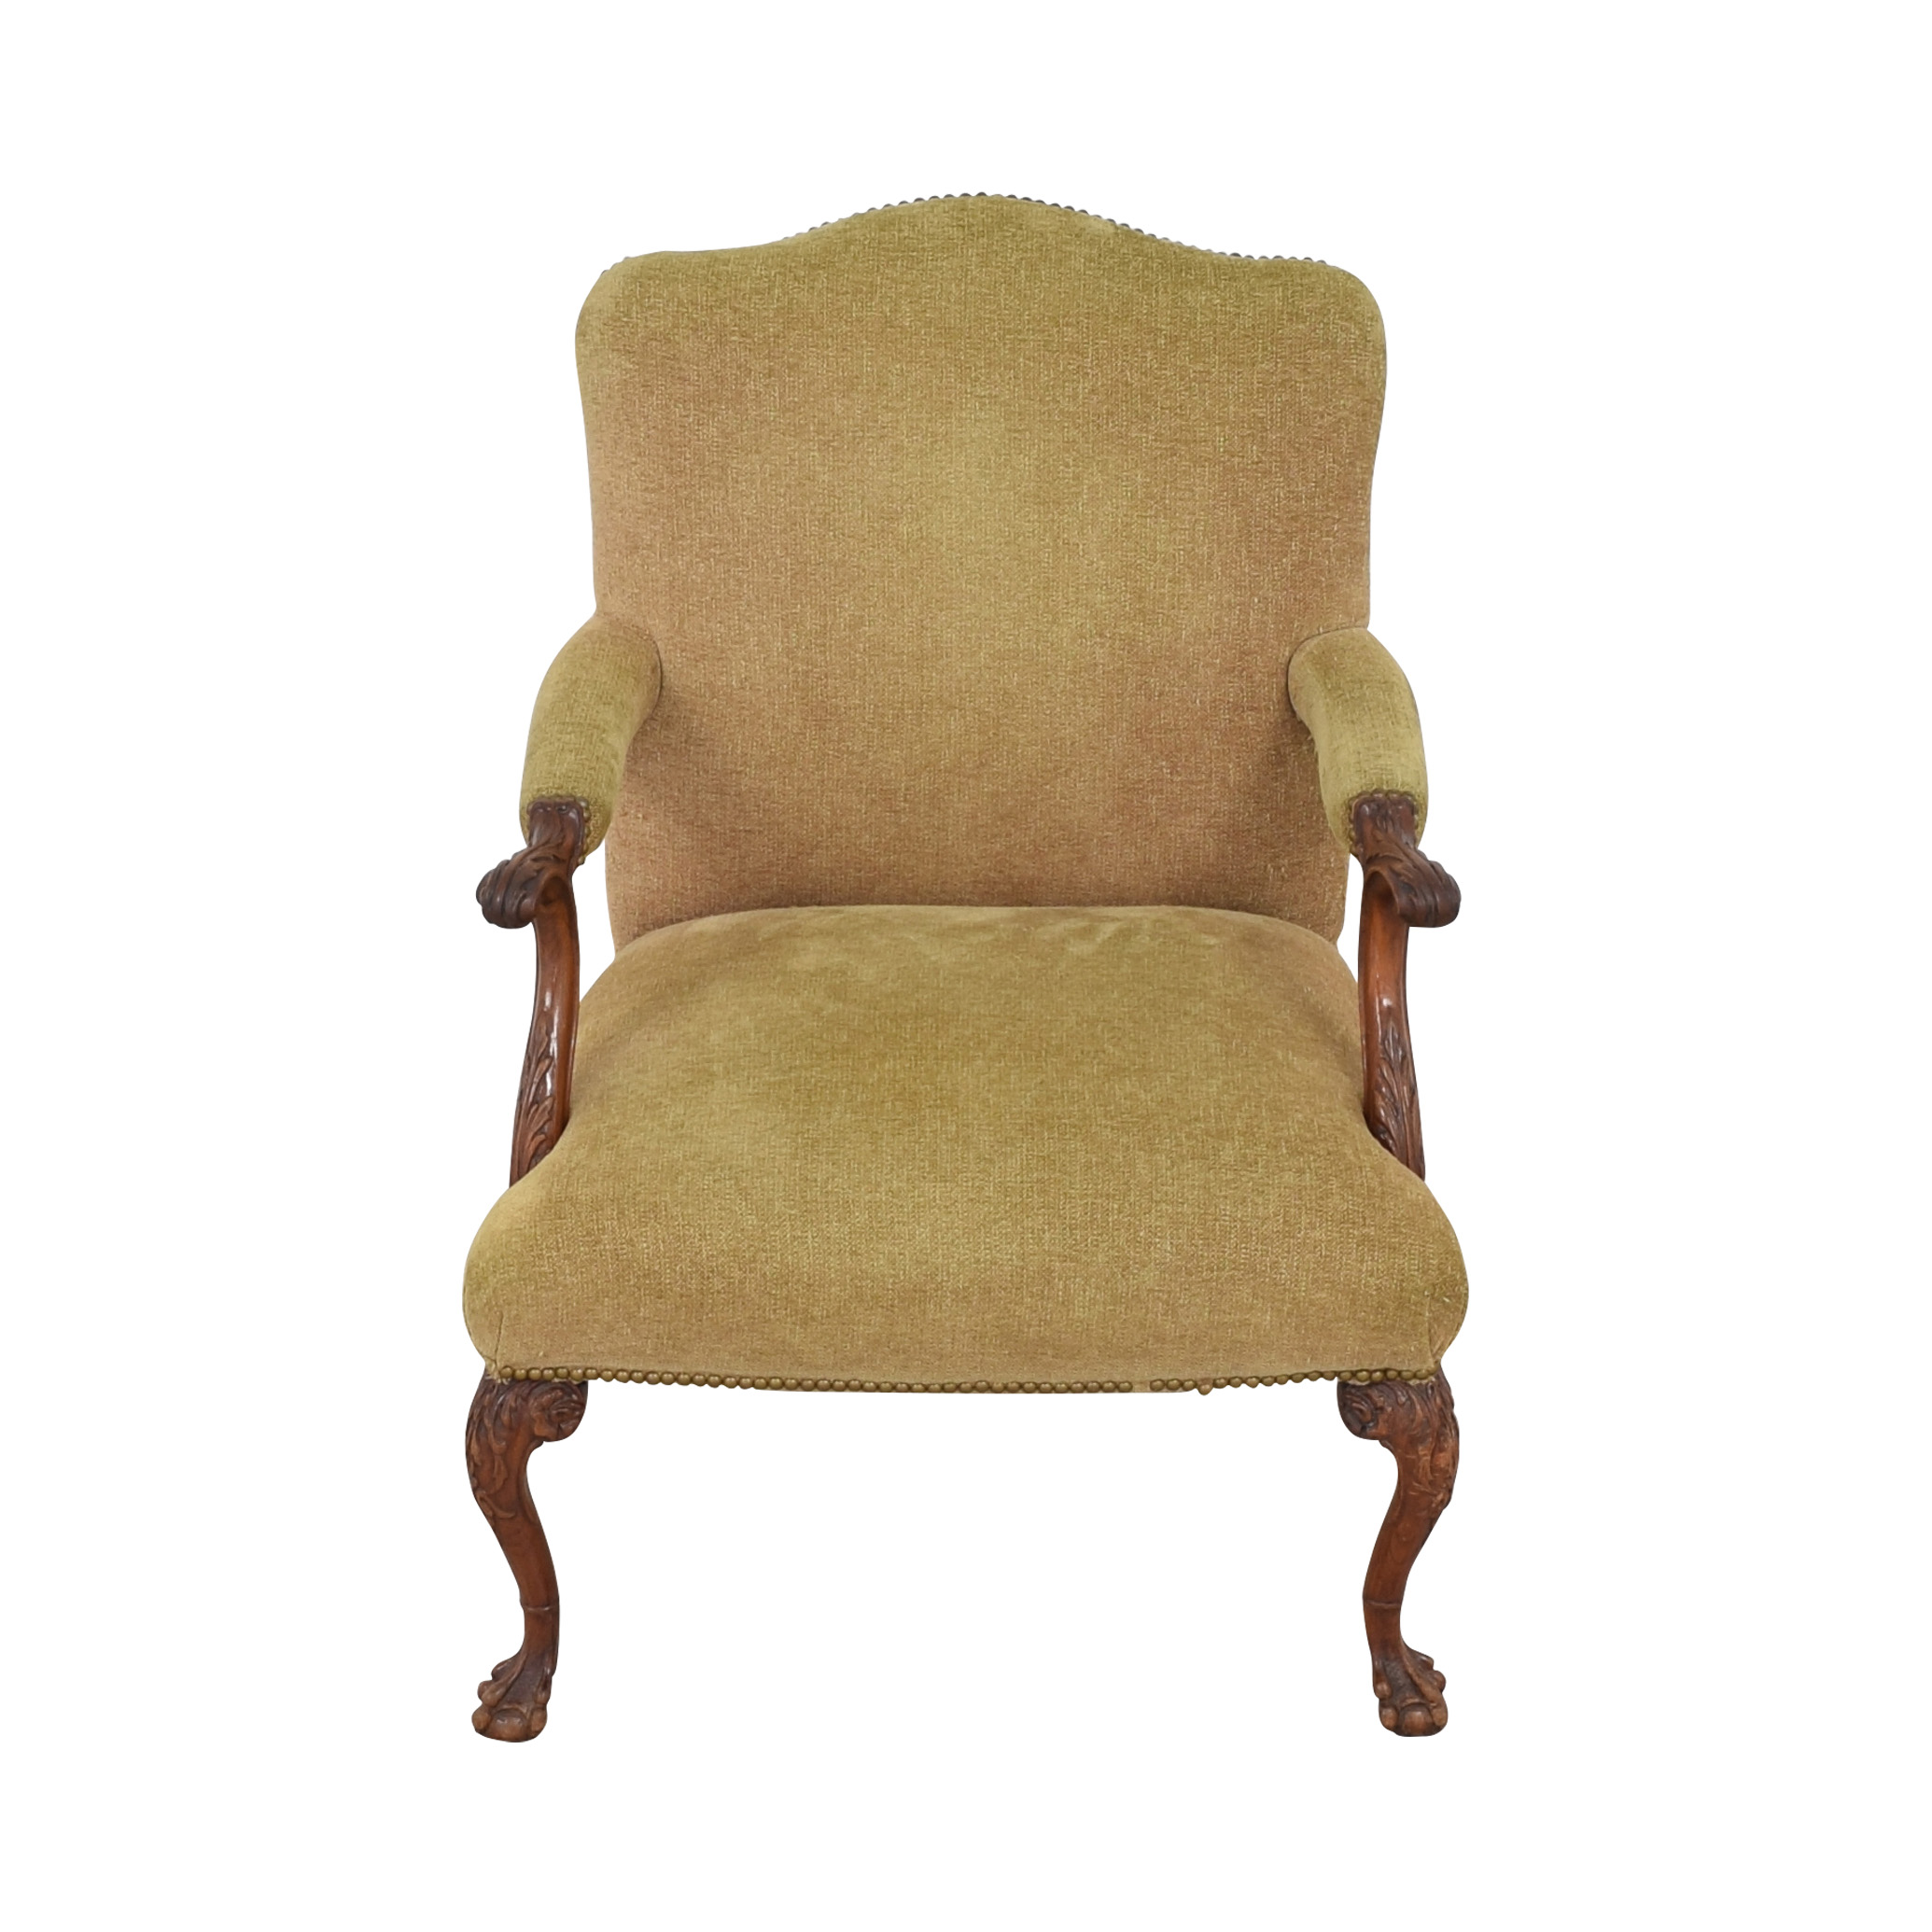 Regency Upholstered Chippendale Occasional Chair / Accent Chairs